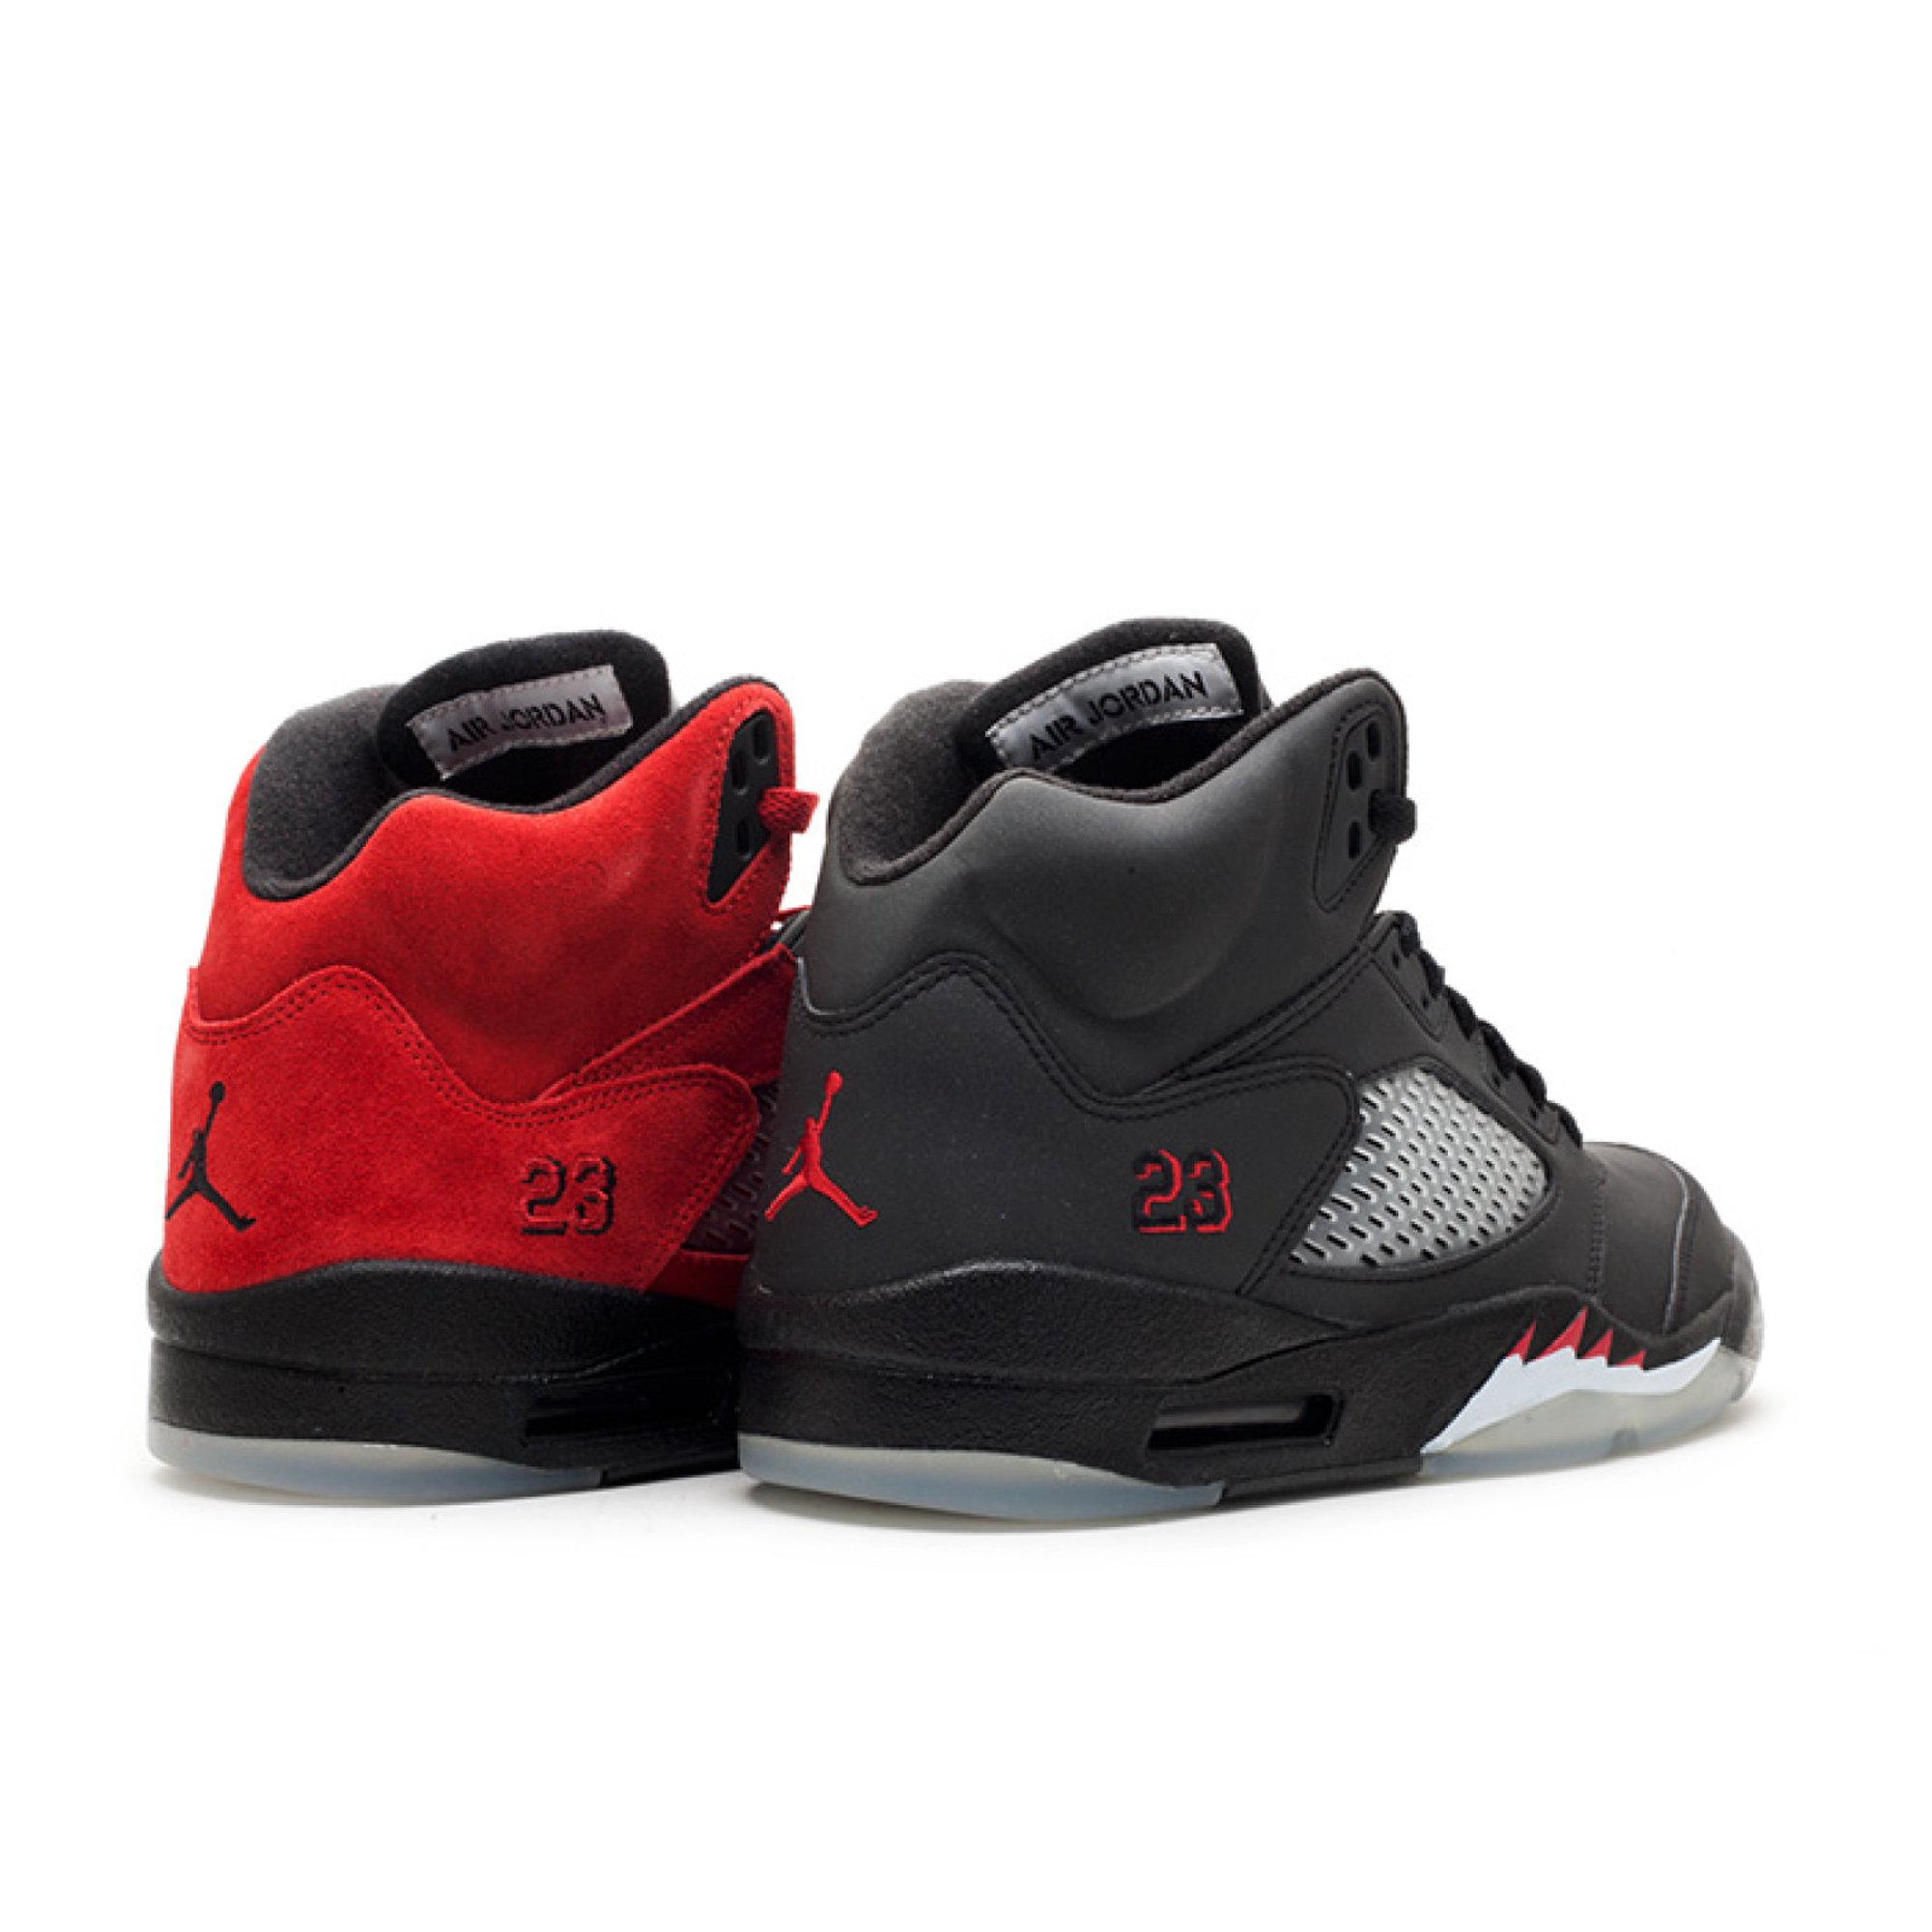 reputable site e88d0 695bb Air Jordan - Men - Air Jordan 5 Retro Dmp  Raging Bull Pack  - 360968-991 -  Size 11.5   Walmart Canada